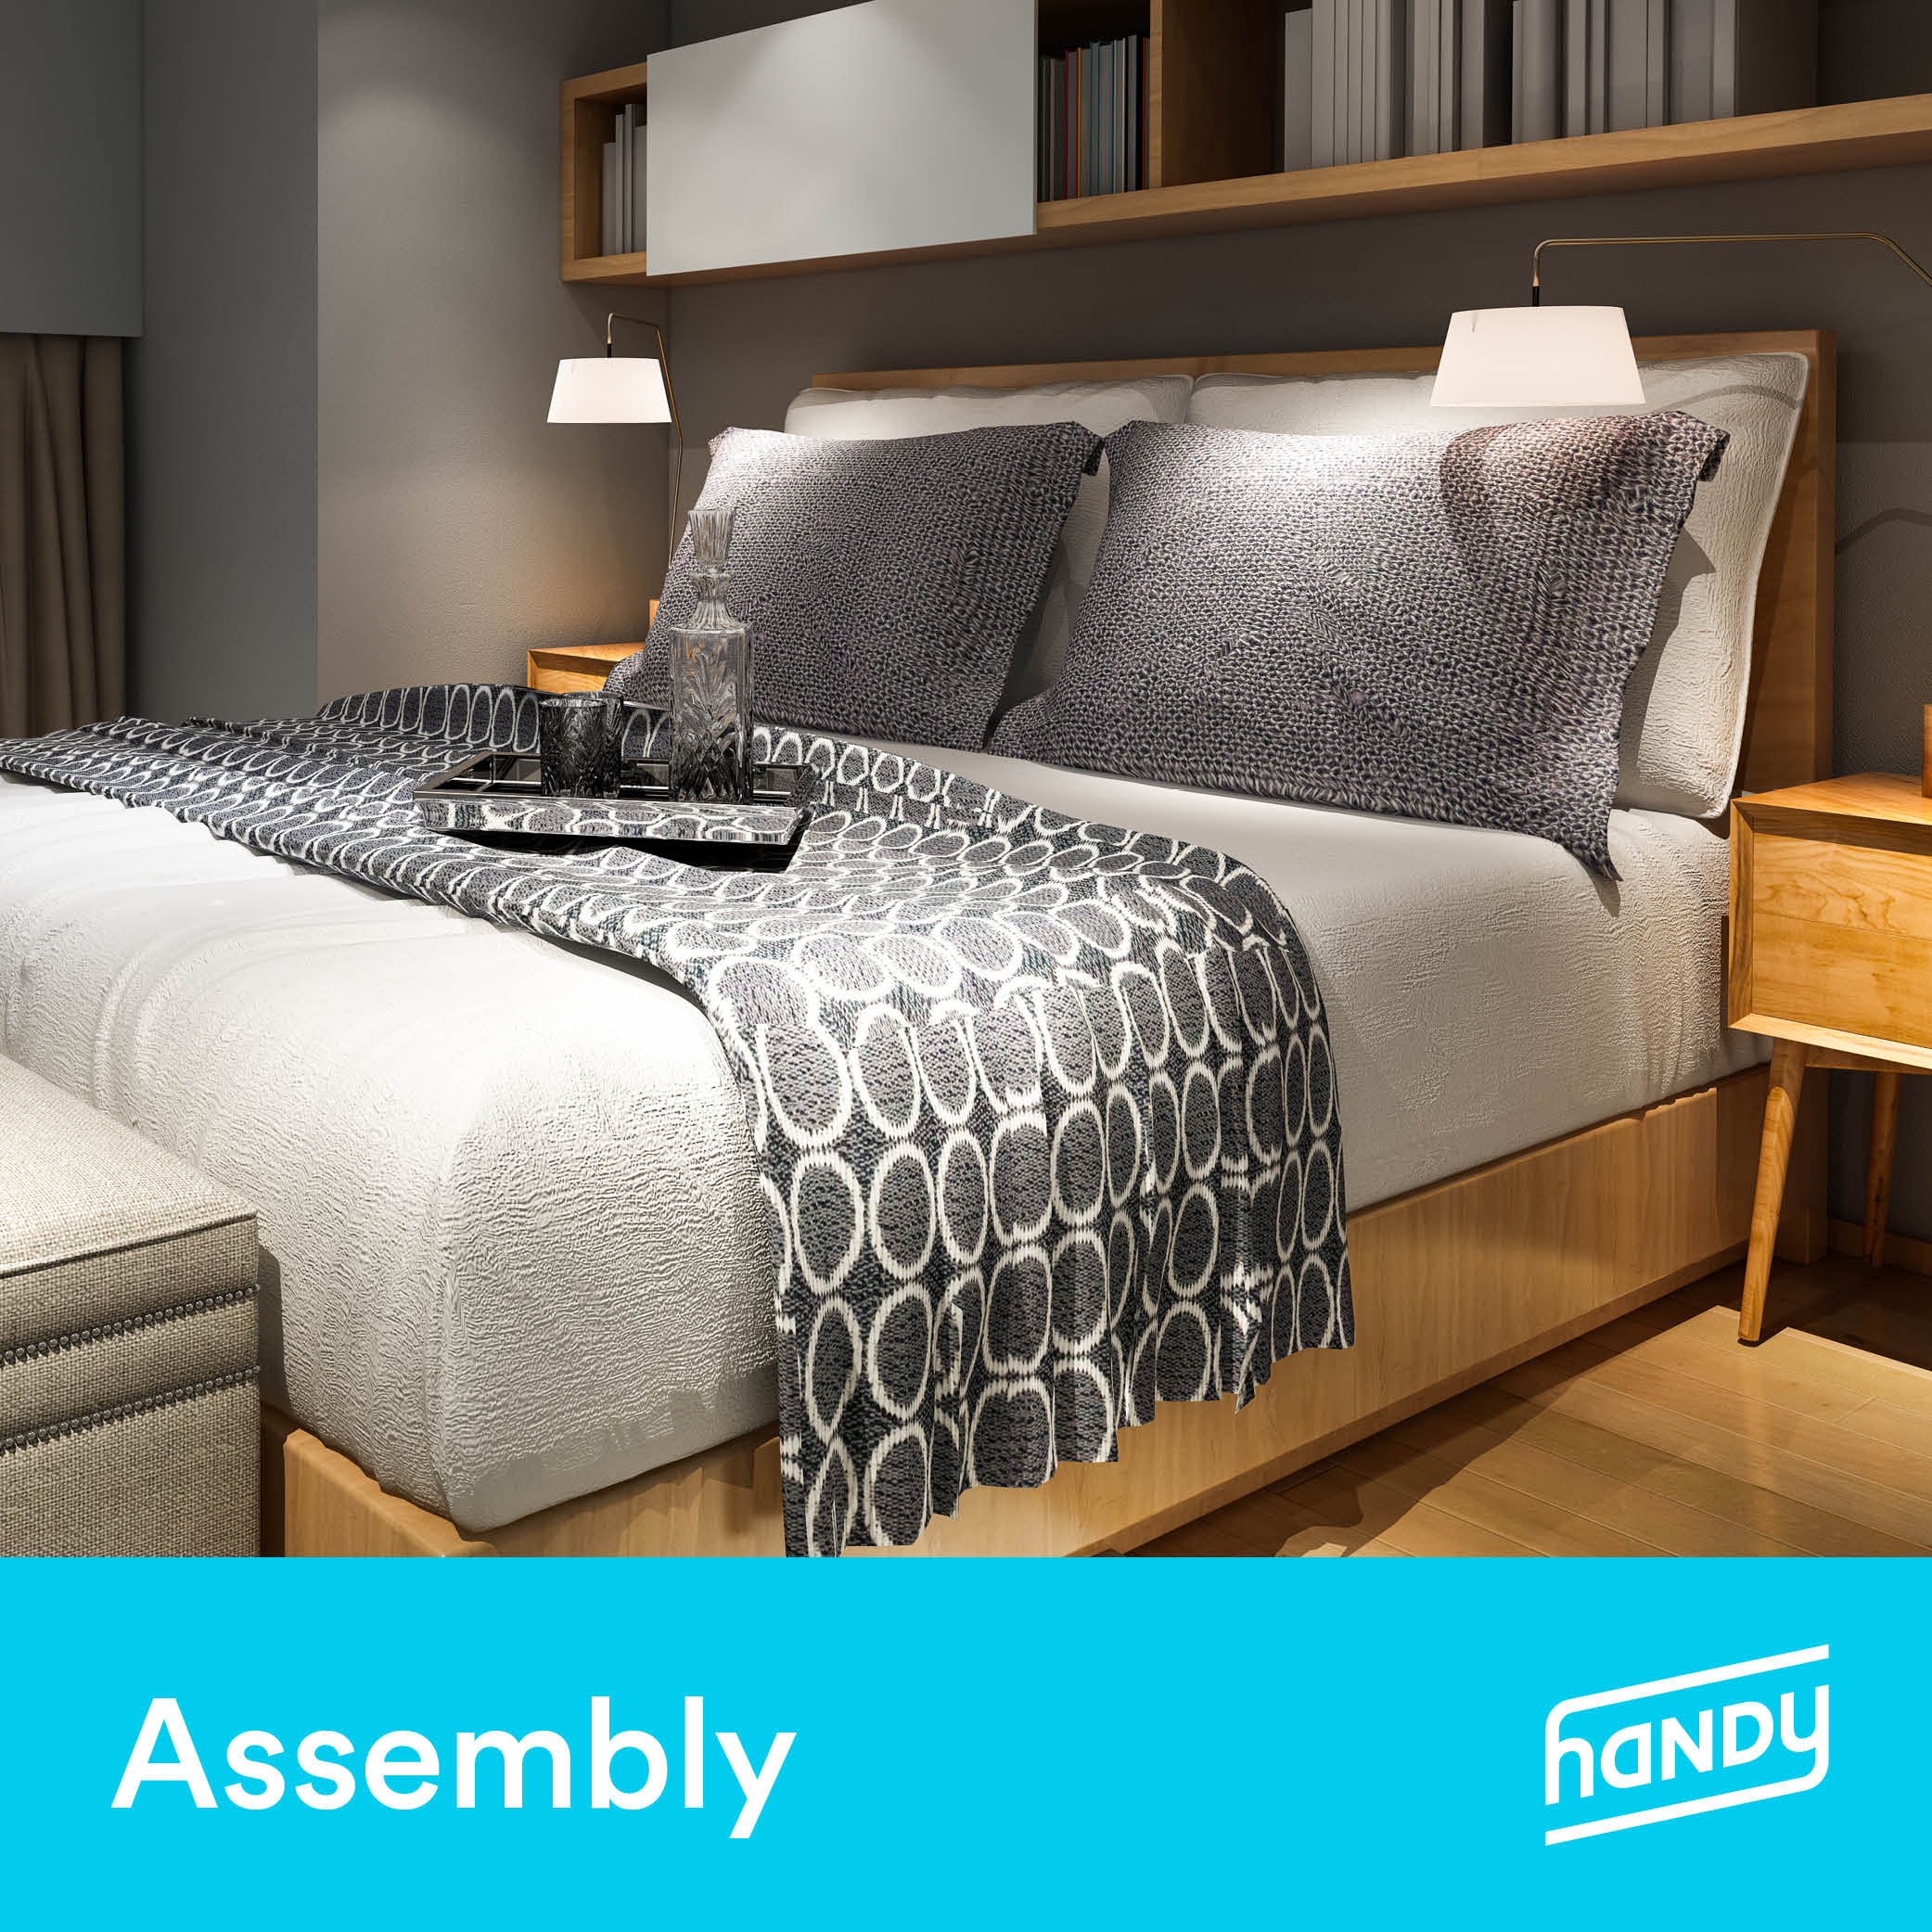 Bed Frame Assembly by Handy